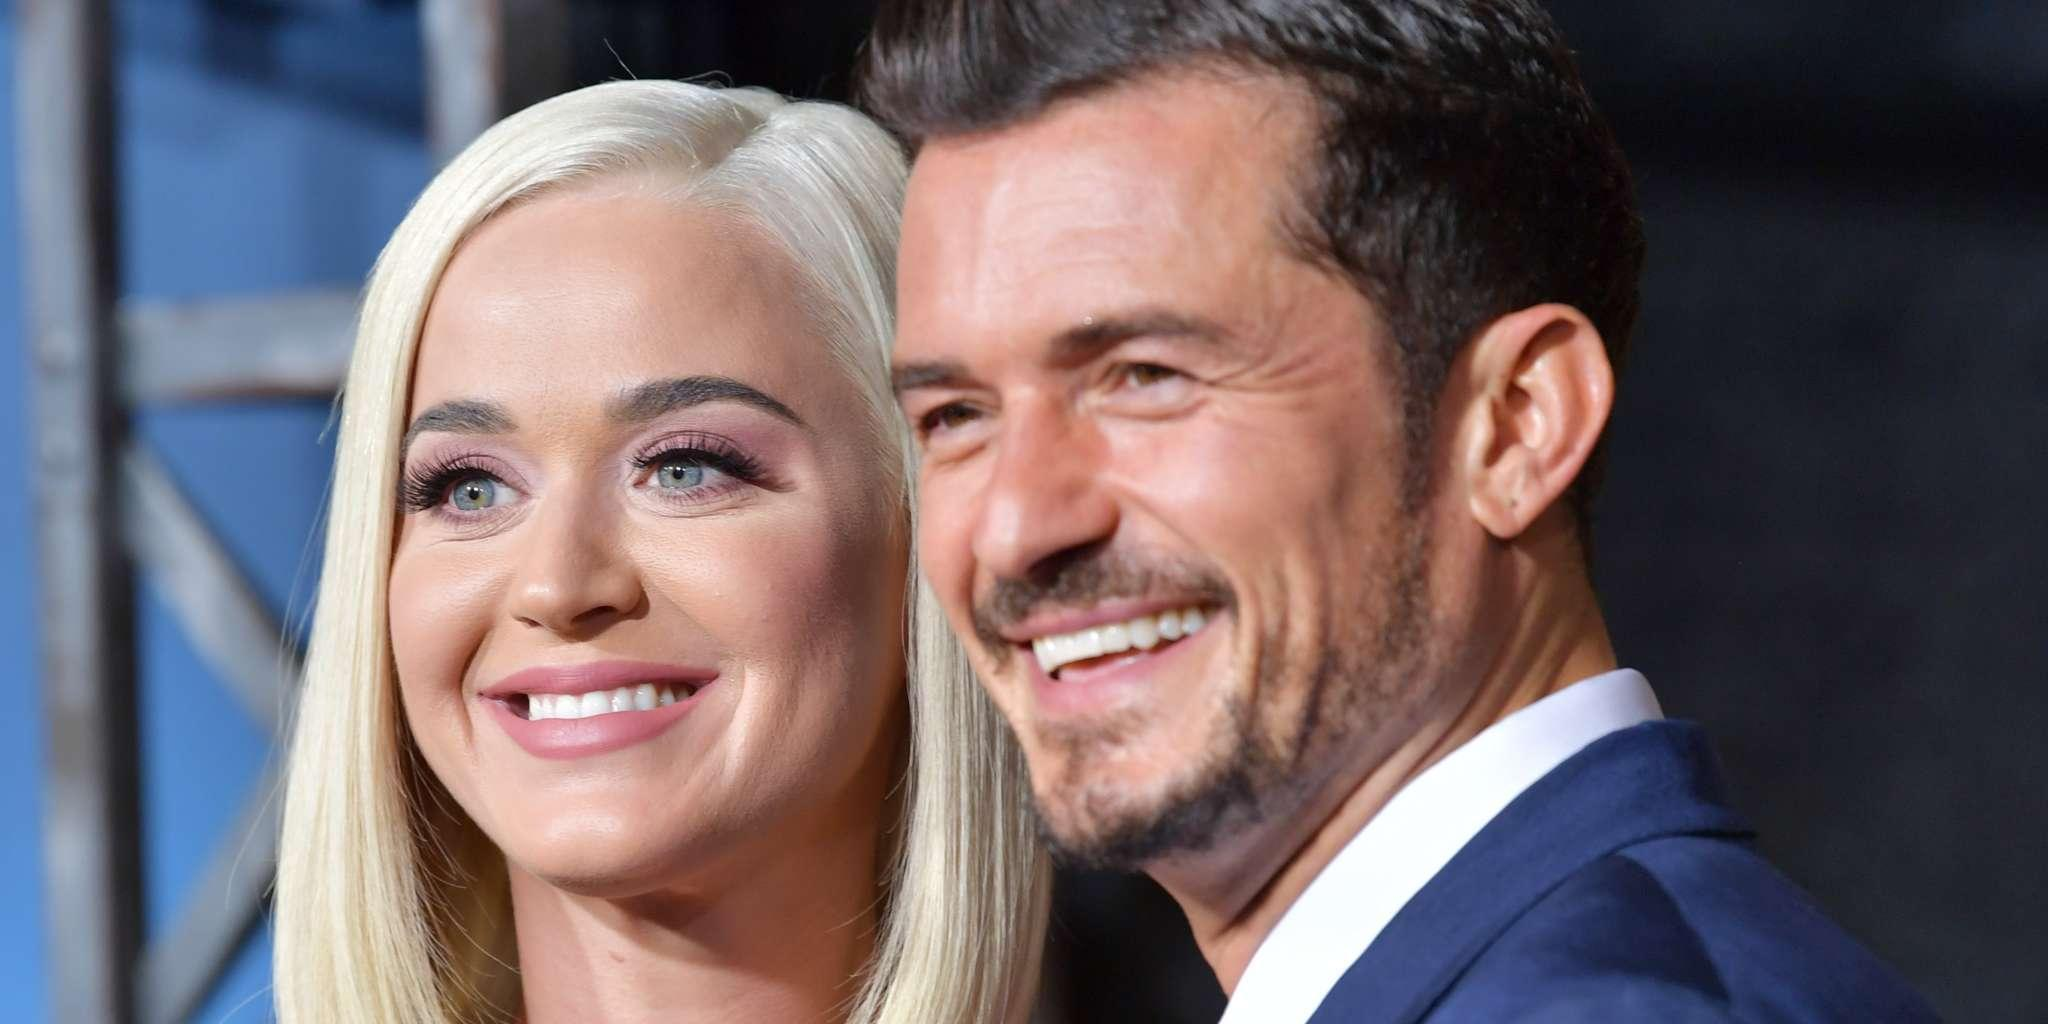 Katy Perry And Orlando Bloom Welcome Their First Child Together - Find Out The Name And Check Out The First Pic!